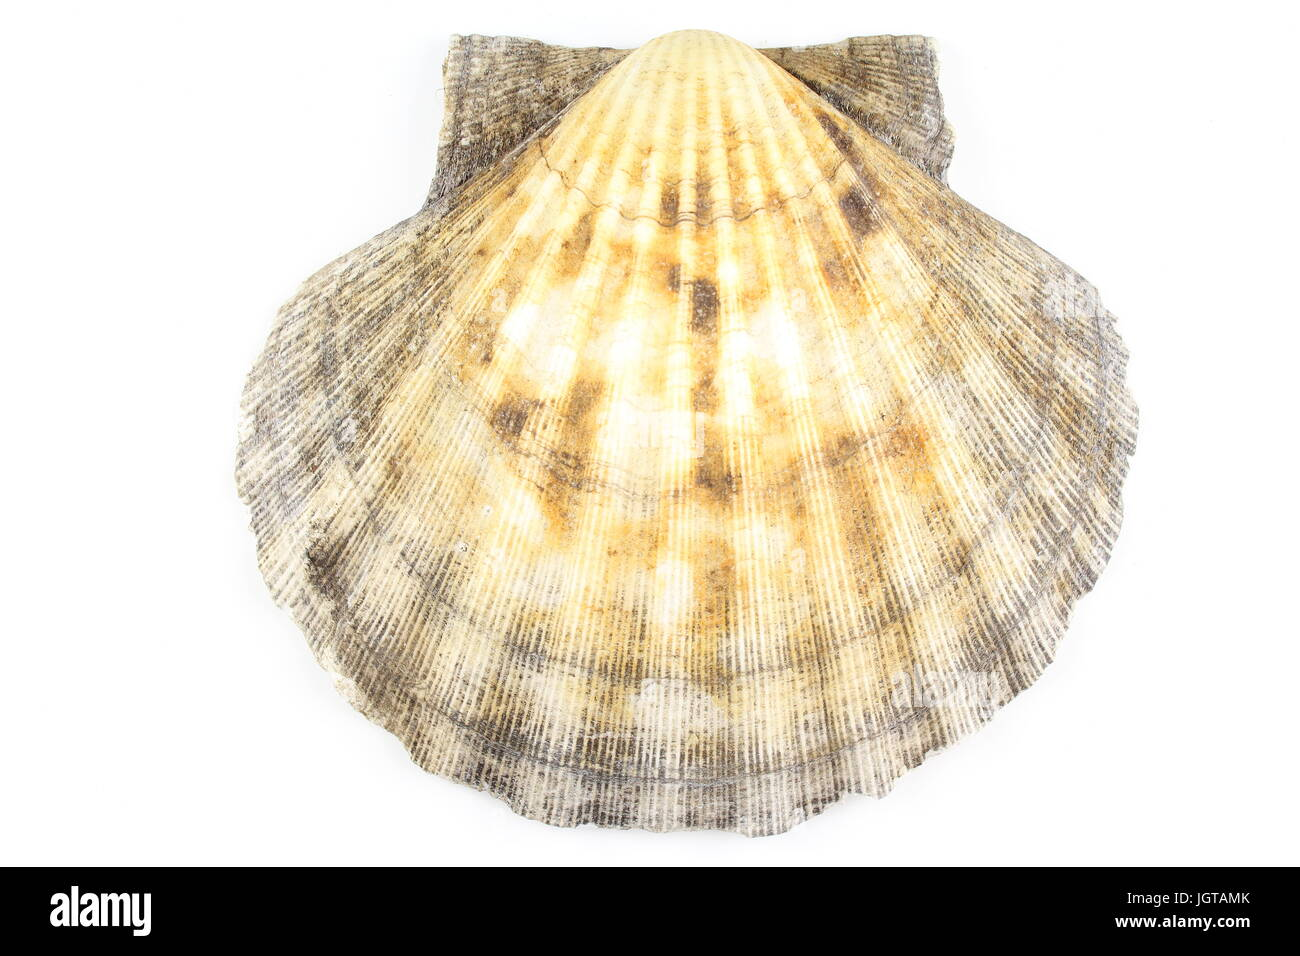 composition of a scallop shell isolated on a white background - Stock Image